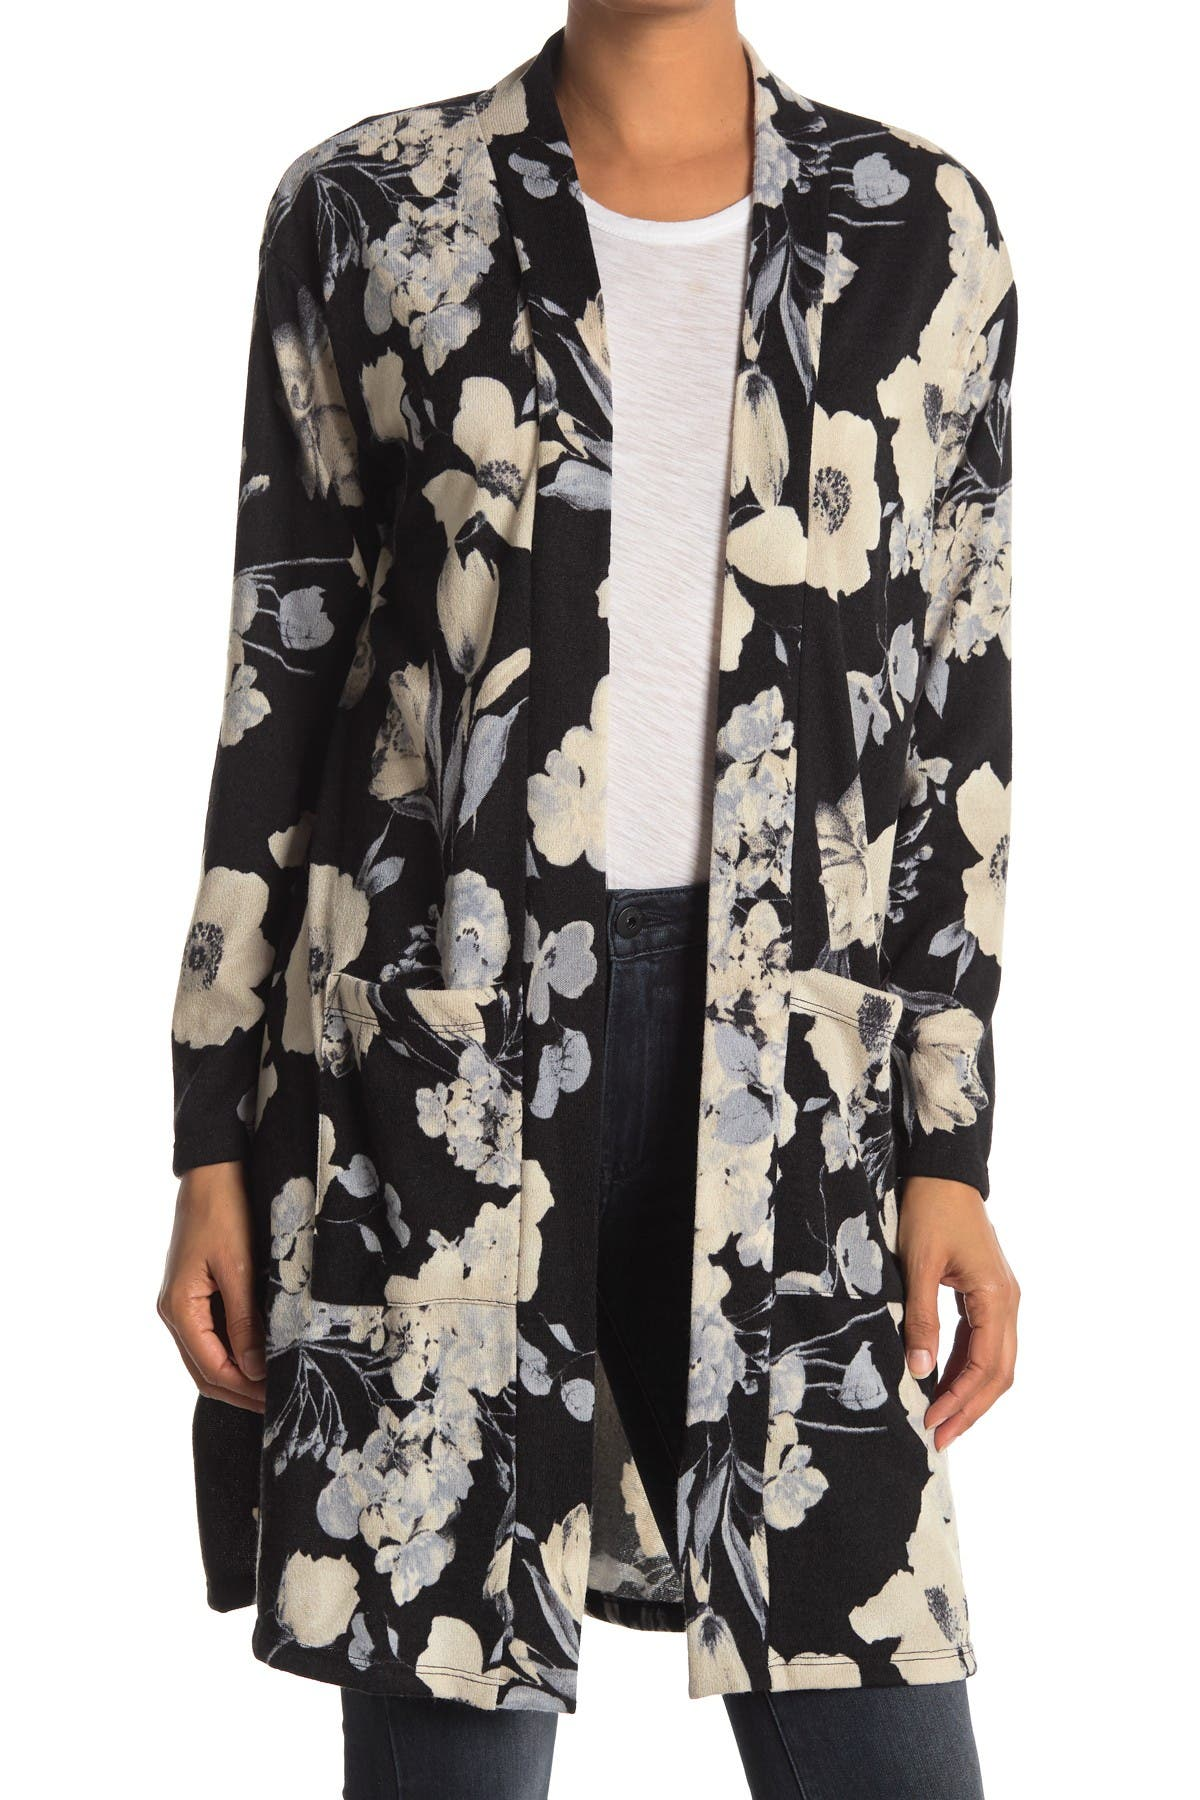 Image of WEST KEI Hachi Floral Cardigan